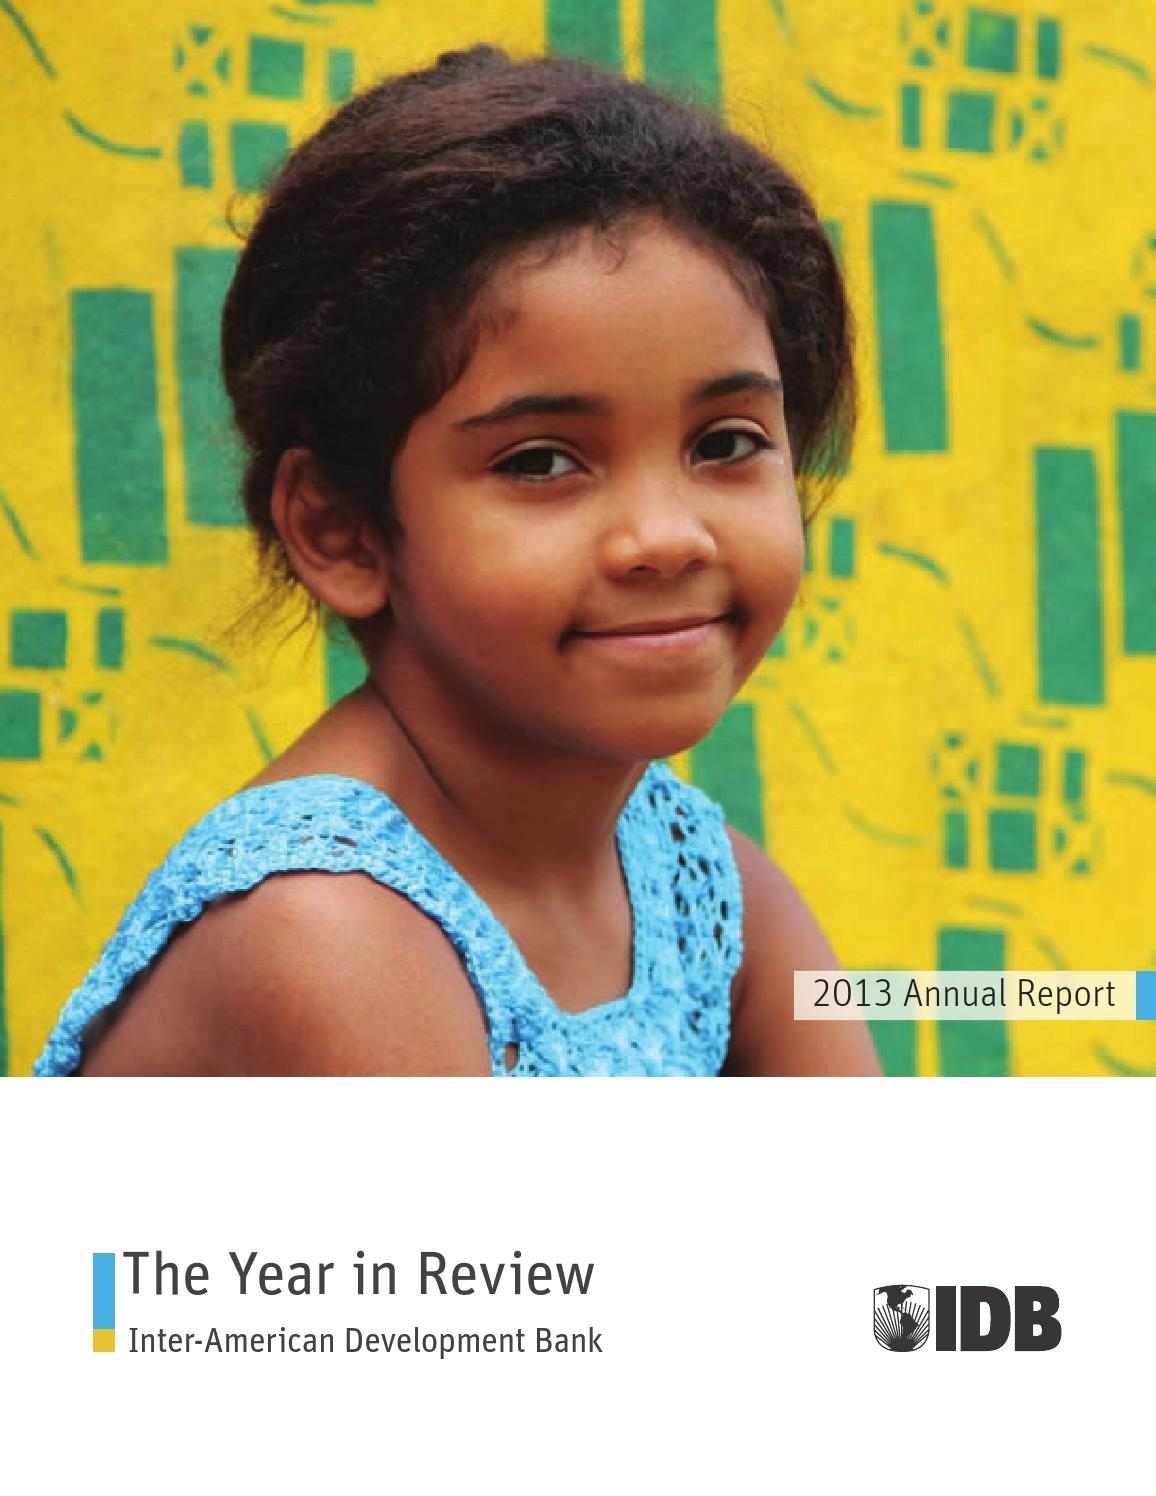 Tatiana perez hsbc bank - Inter American Development Bank Annual Report 2013 The Year In Review By Idb Issuu